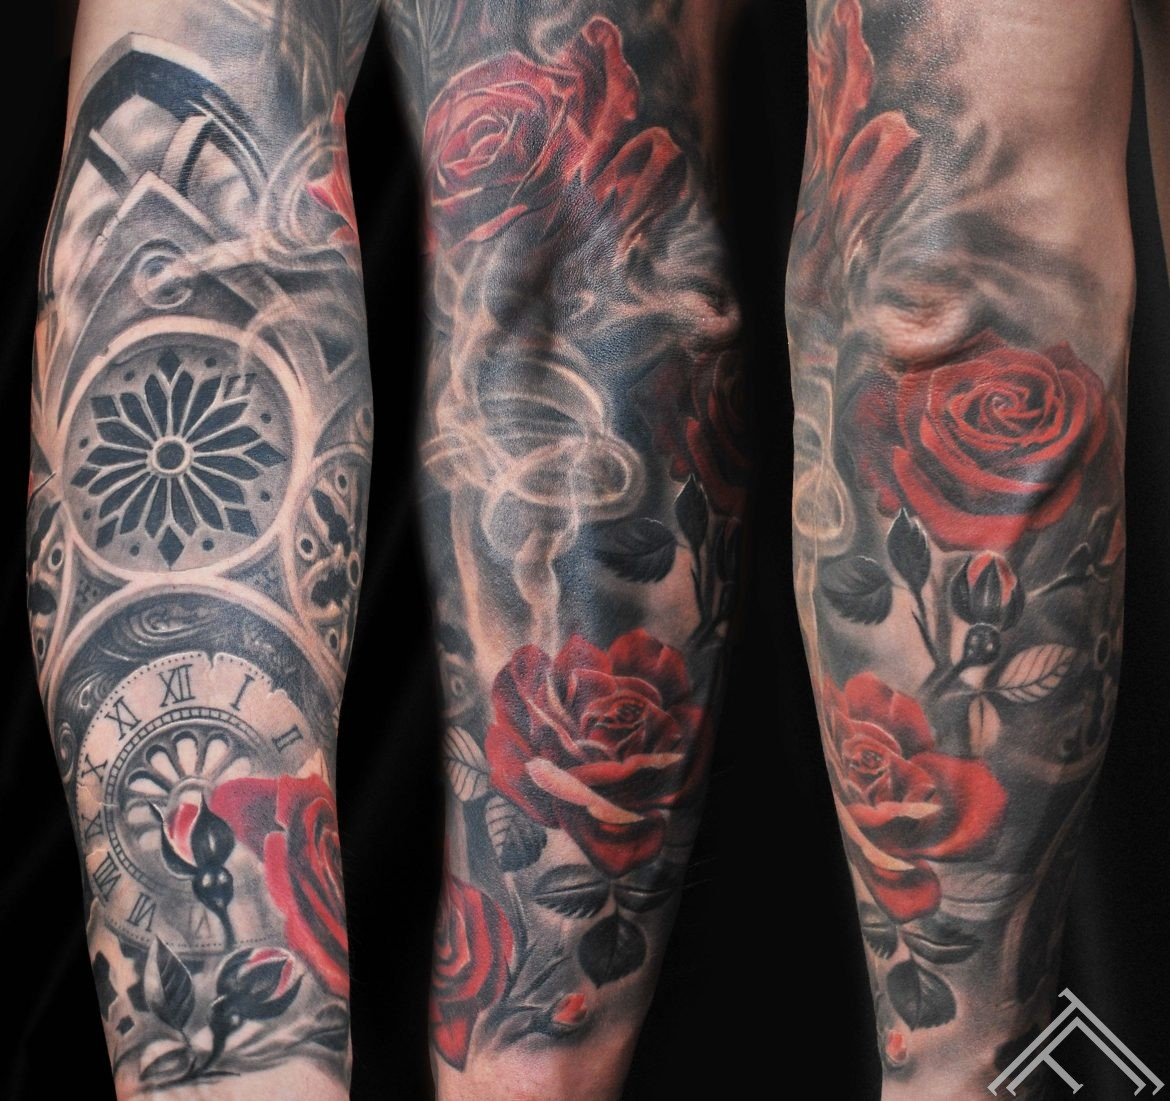 baroque-clockface-roses-tattoo-tattoofrequency-riga-art